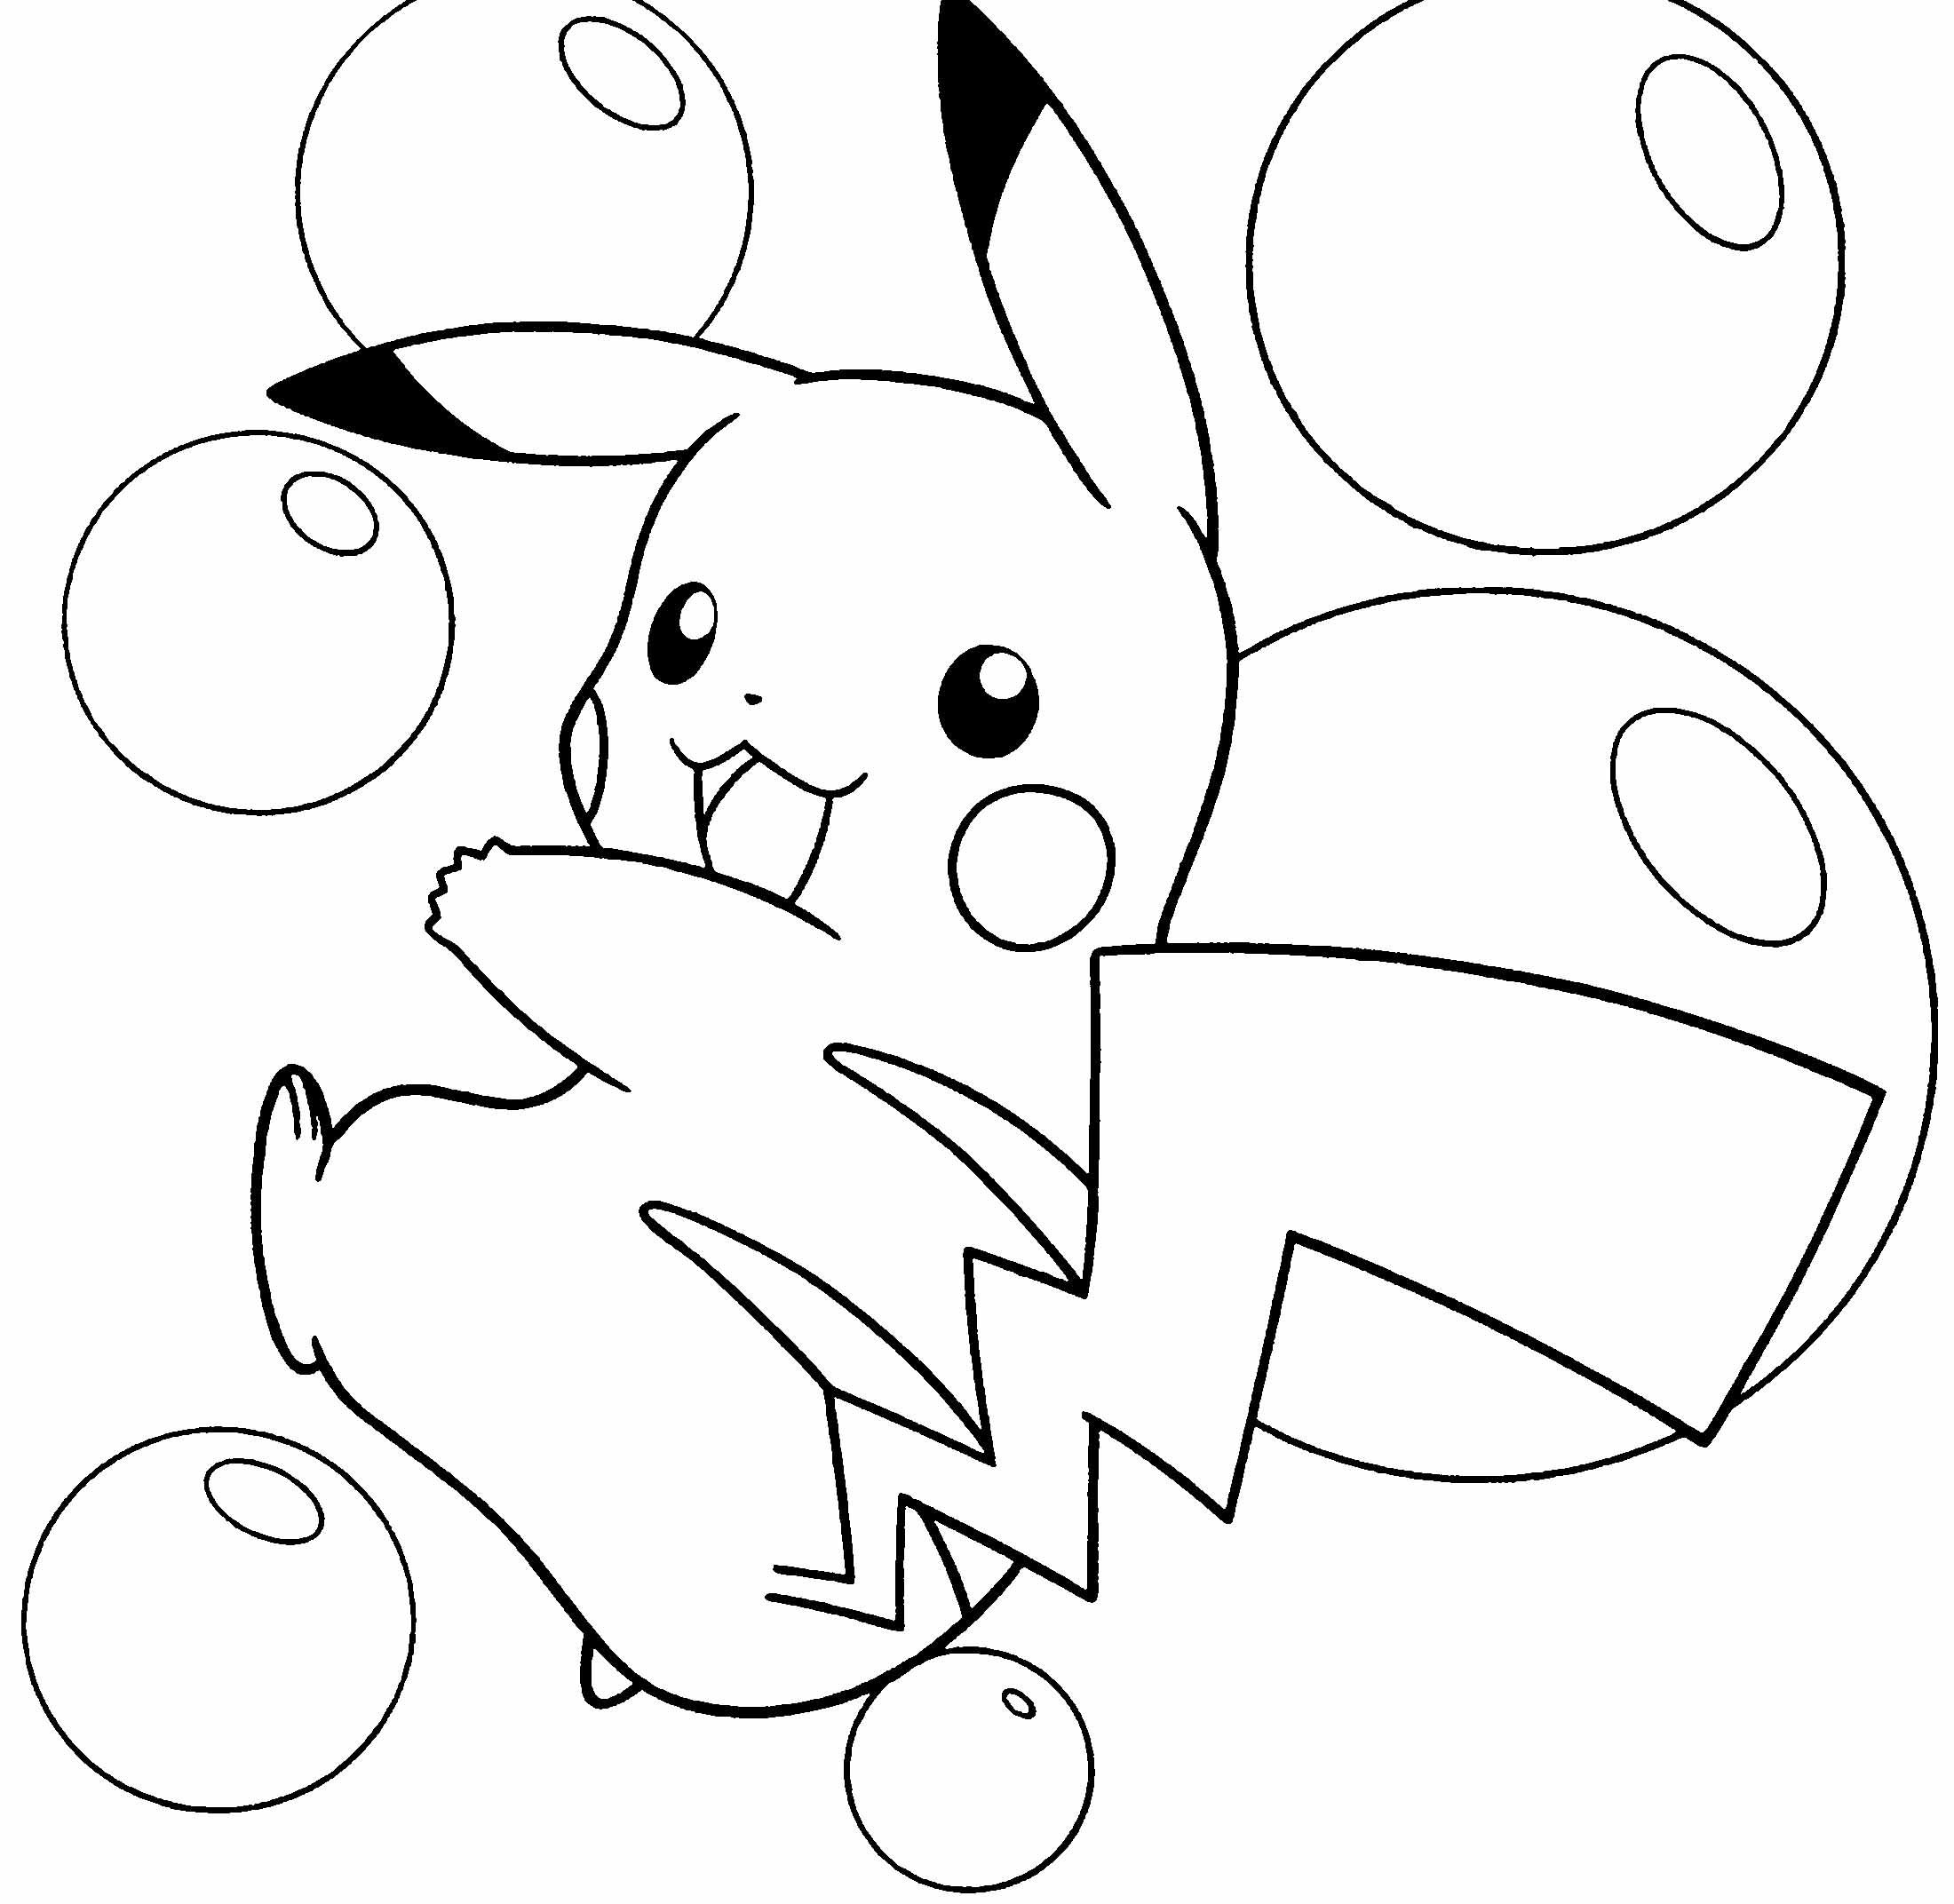 Pikachu Coloring Pages Free Large Images Pokemon